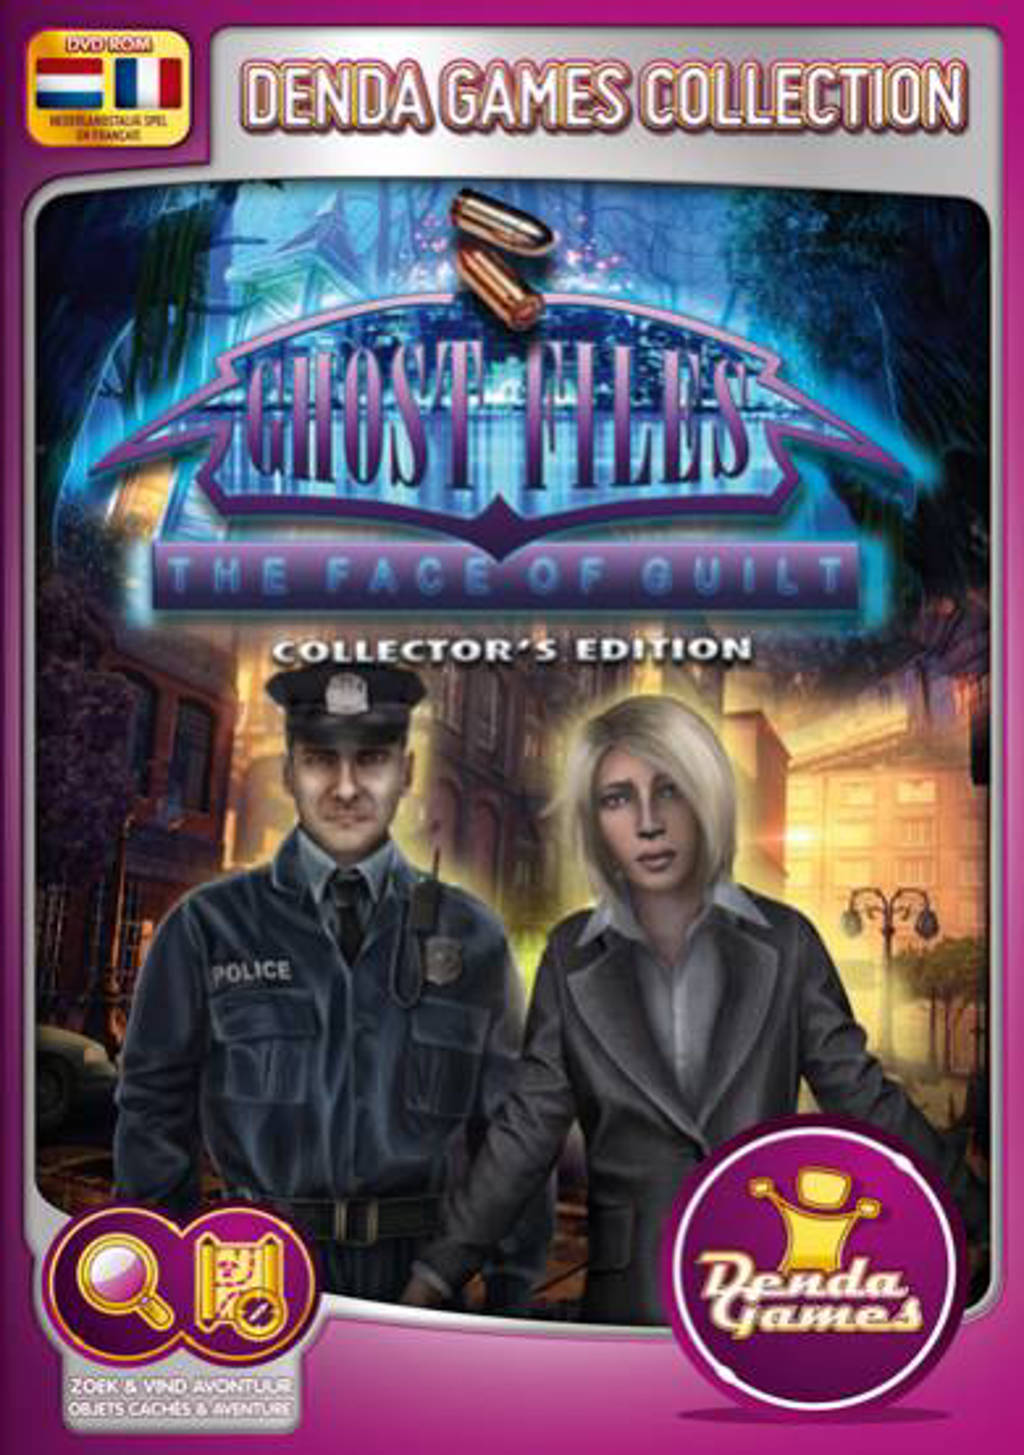 Ghost files - The faces of guilt (Collectors edition)  (PC)